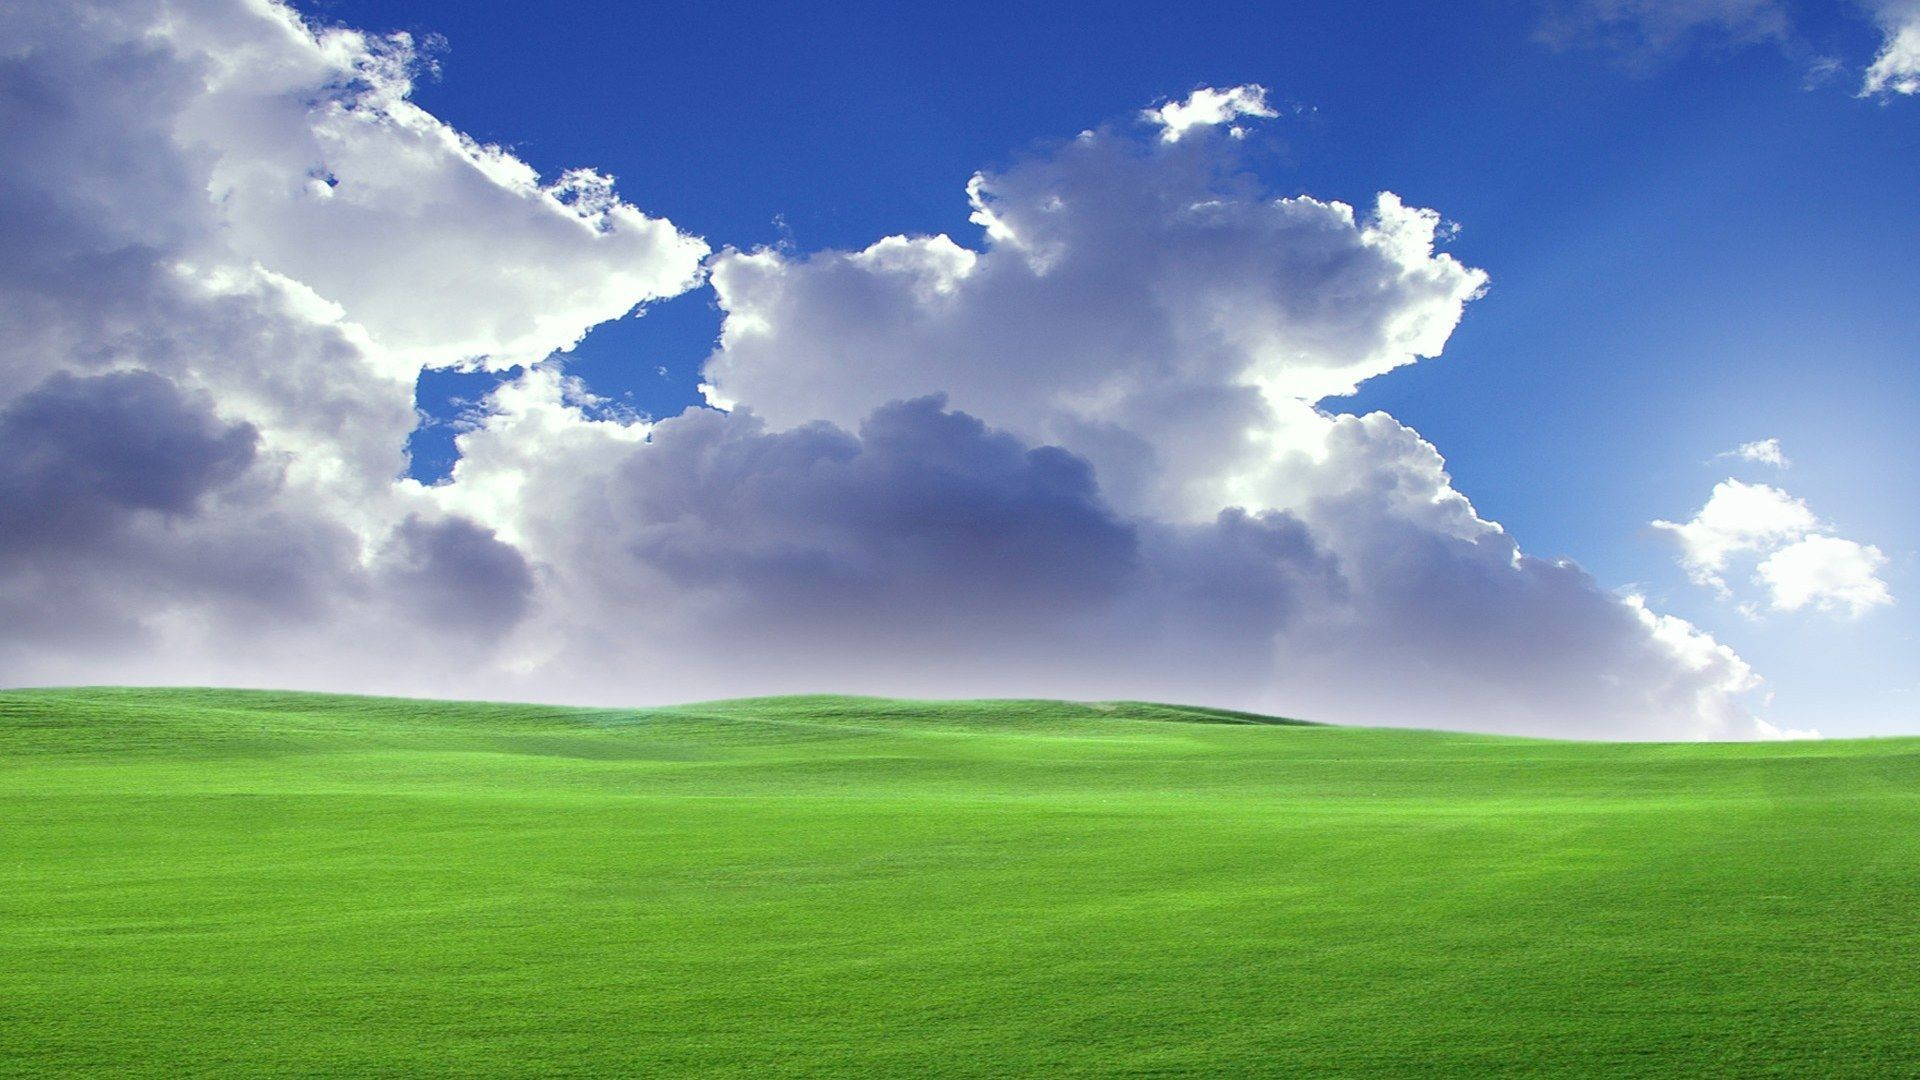 Hd Widescreen Wallpapers 1080p 60 Images